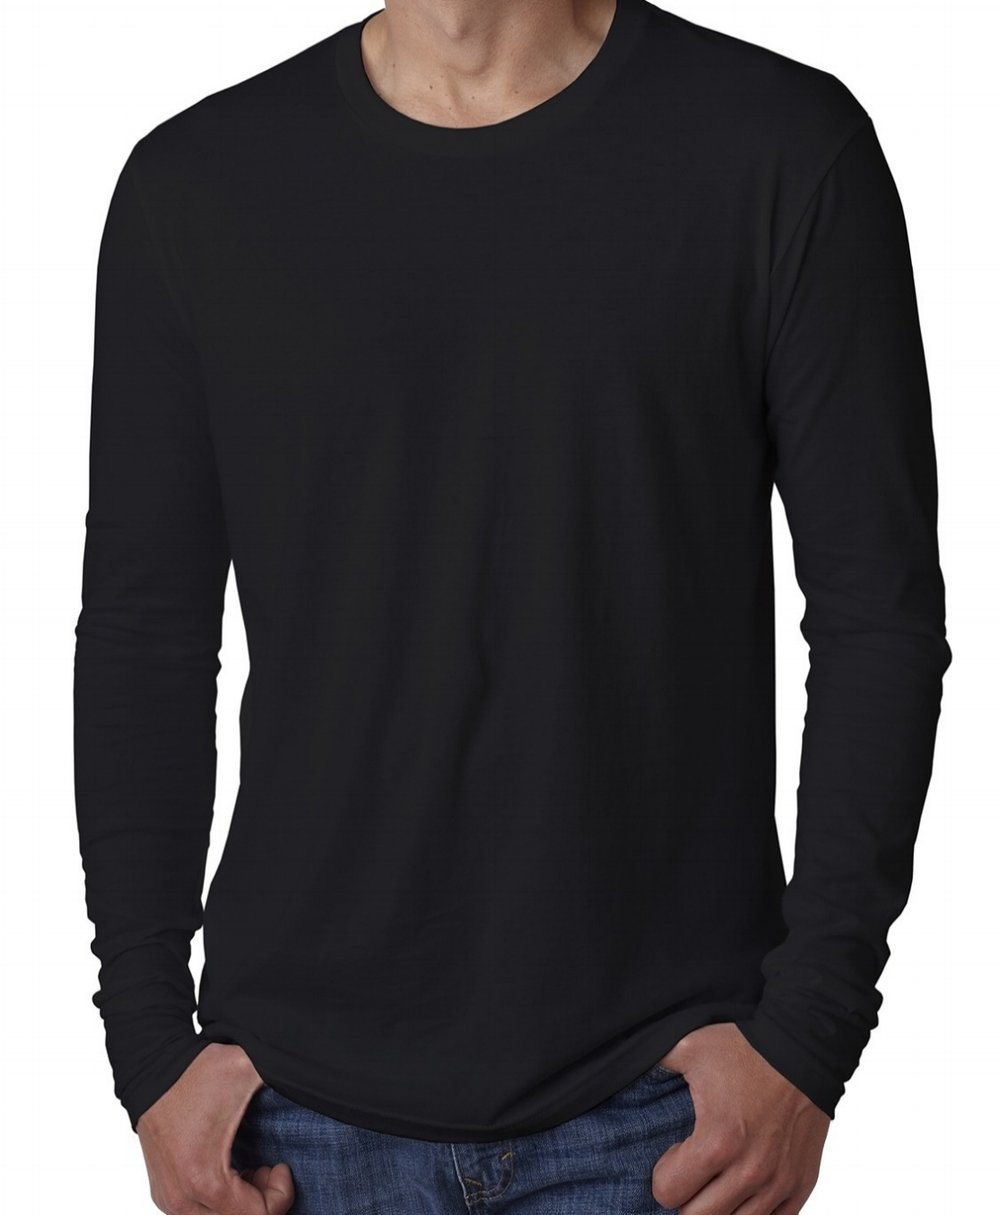 Unisex cotton long-sleeve crew neck (100% cotton, longer length, $$).